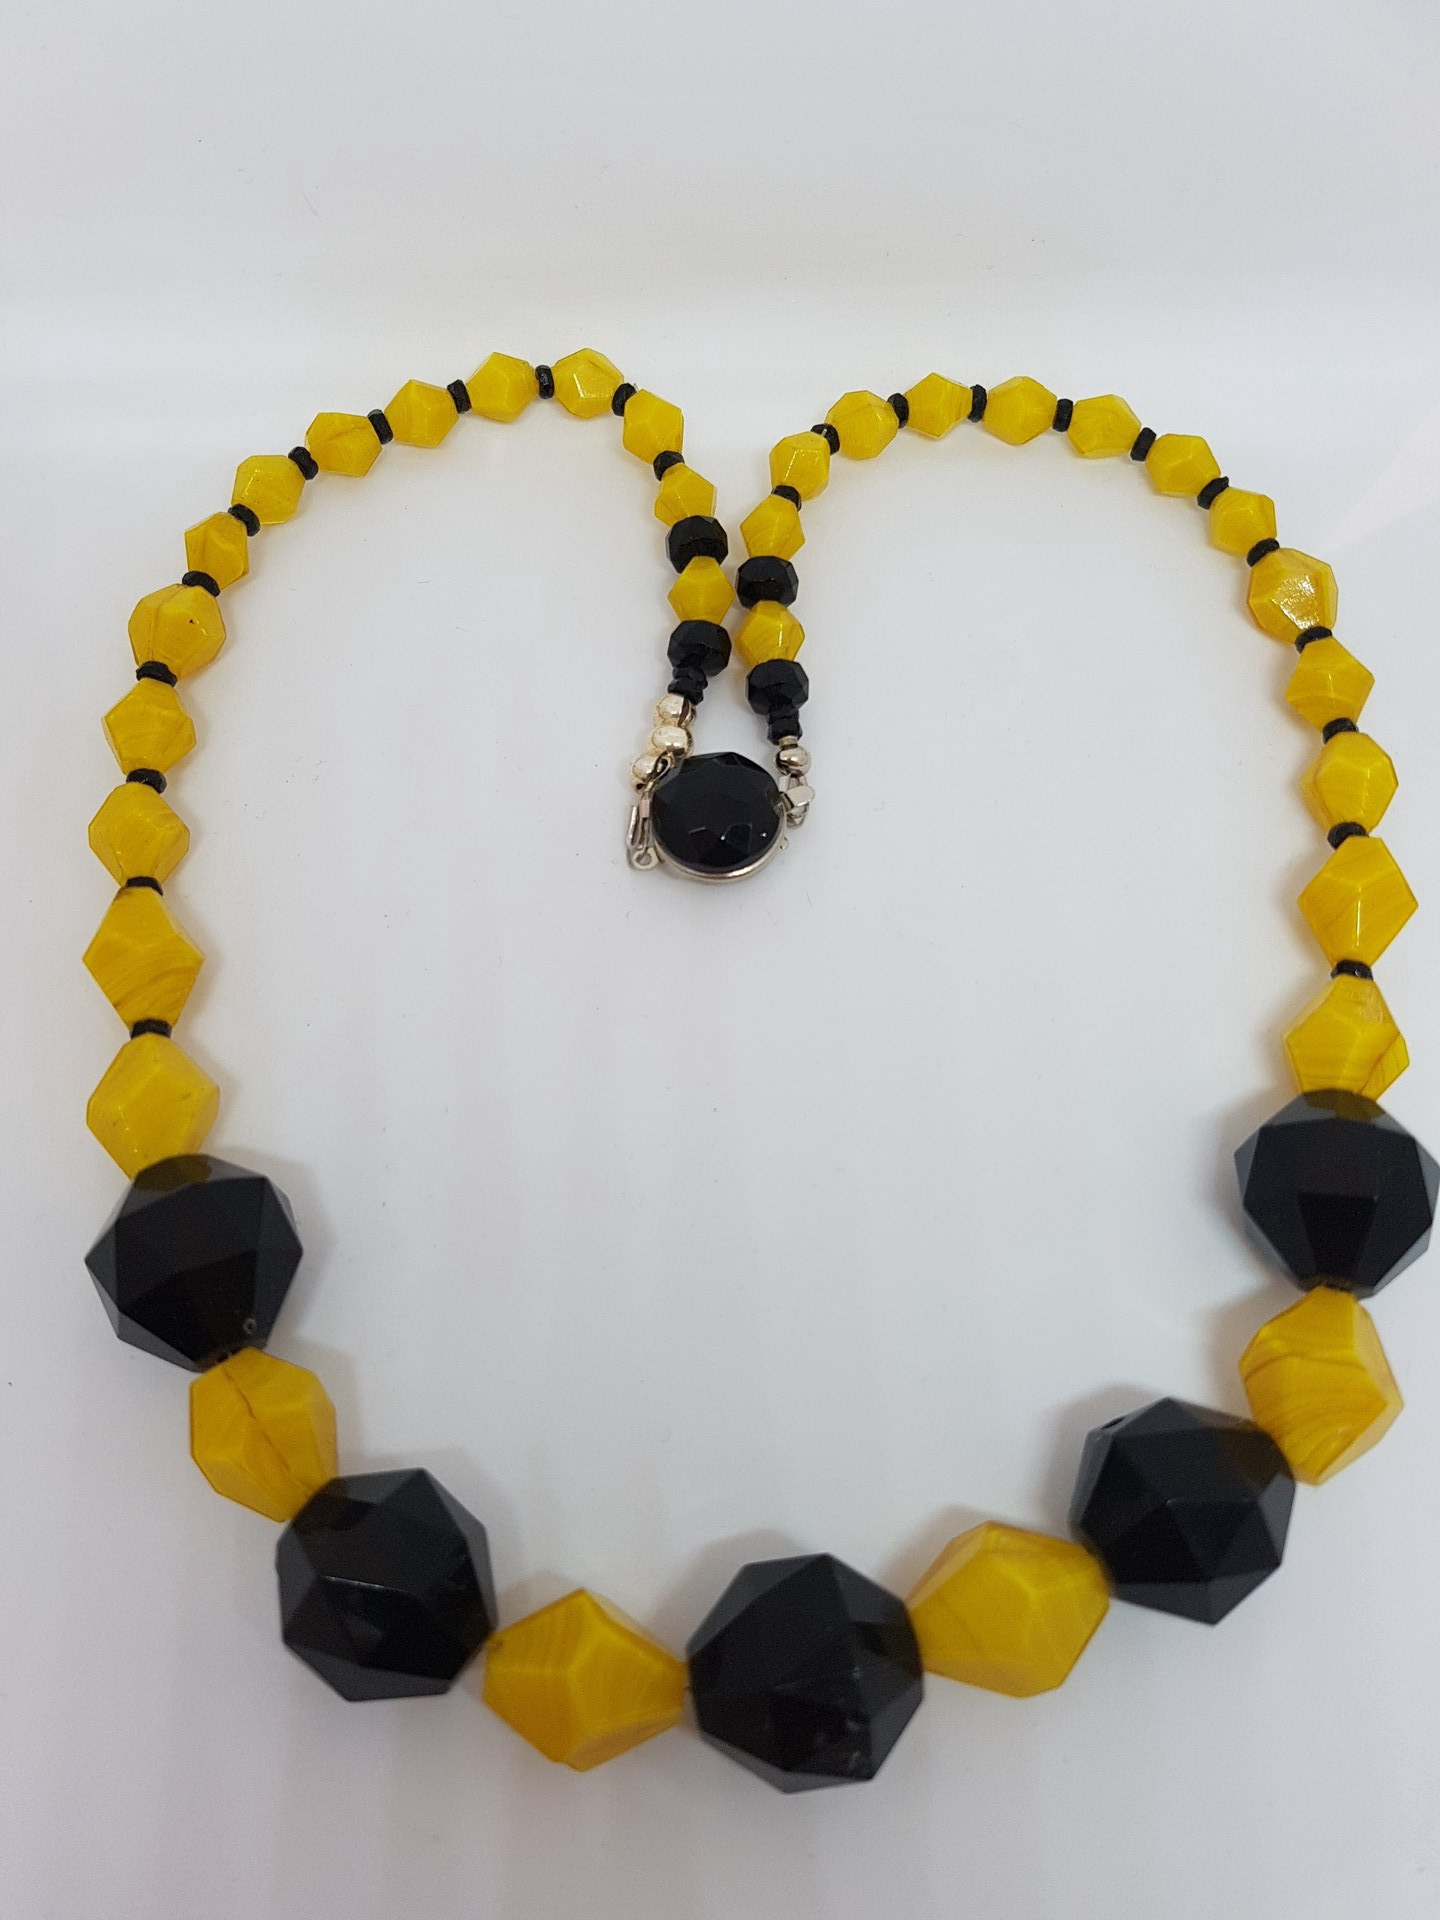 Vintage Black and Yellow Beaded Necklace